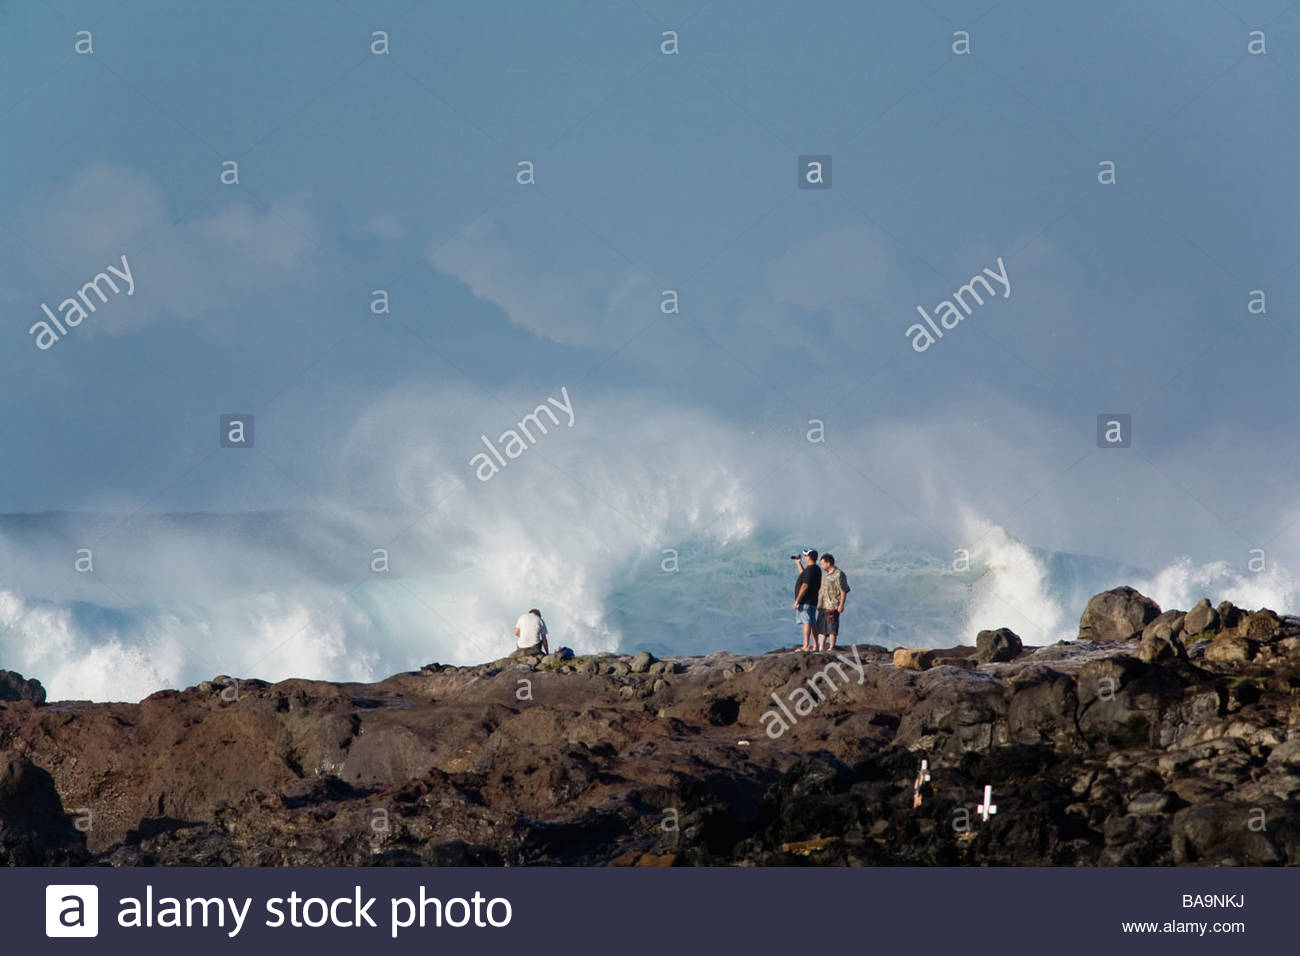 Tourists too close to dangerous surf at Hookipa Bay on the island of Maui in the State of Hawaii USA - Stock Image